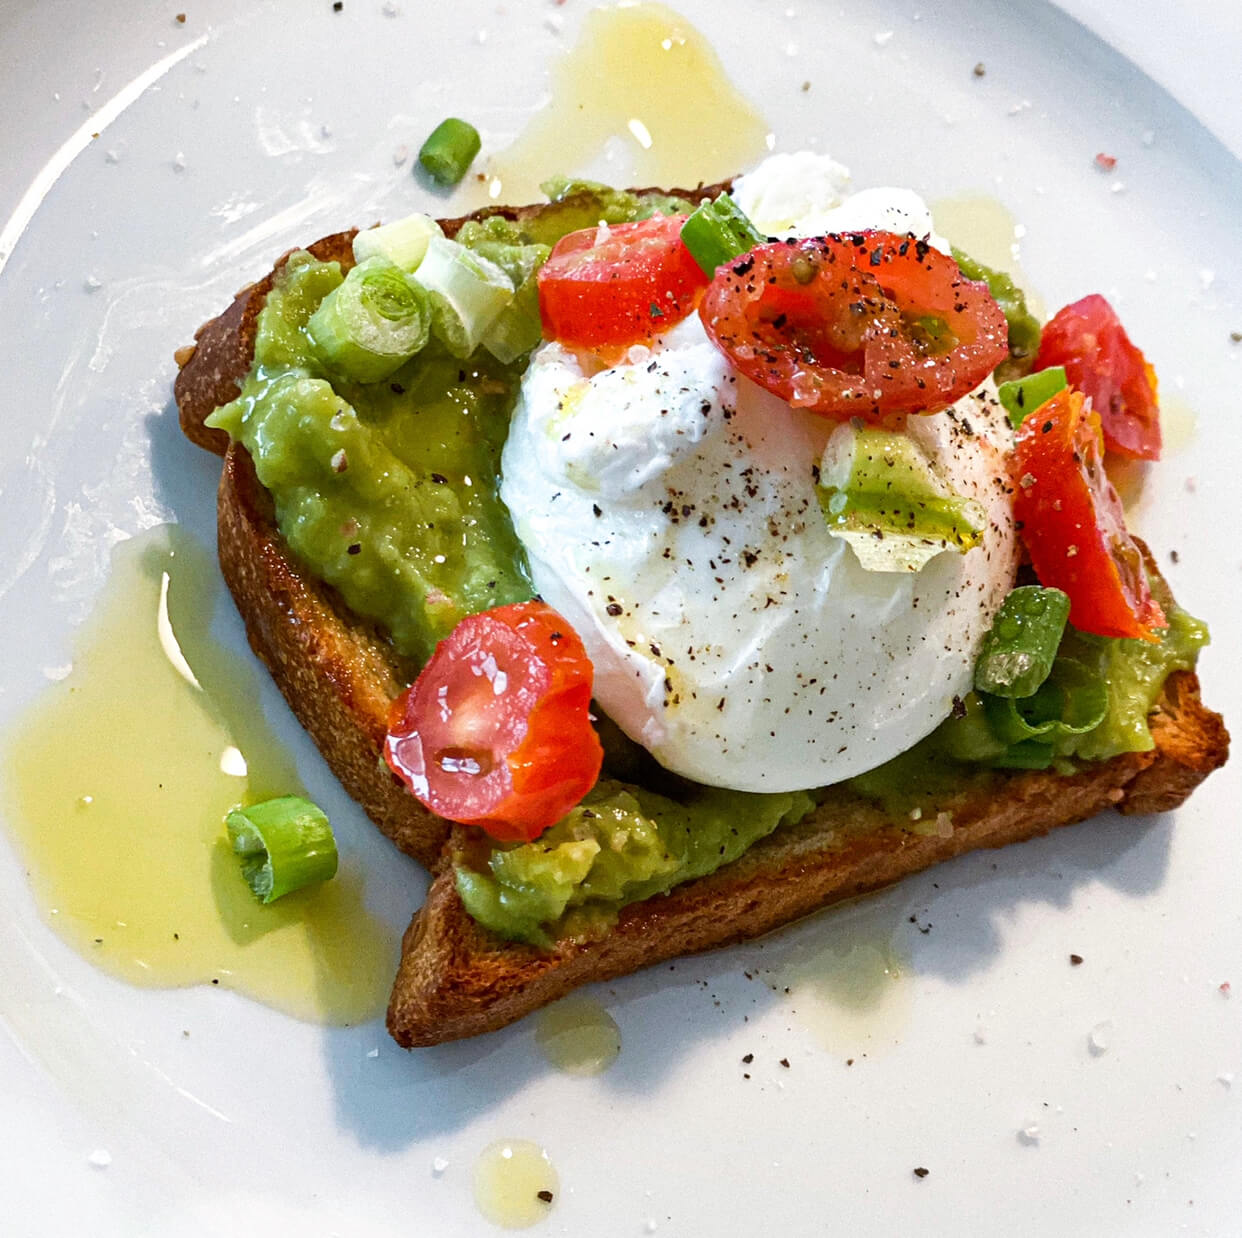 An avocado toast with poached egg